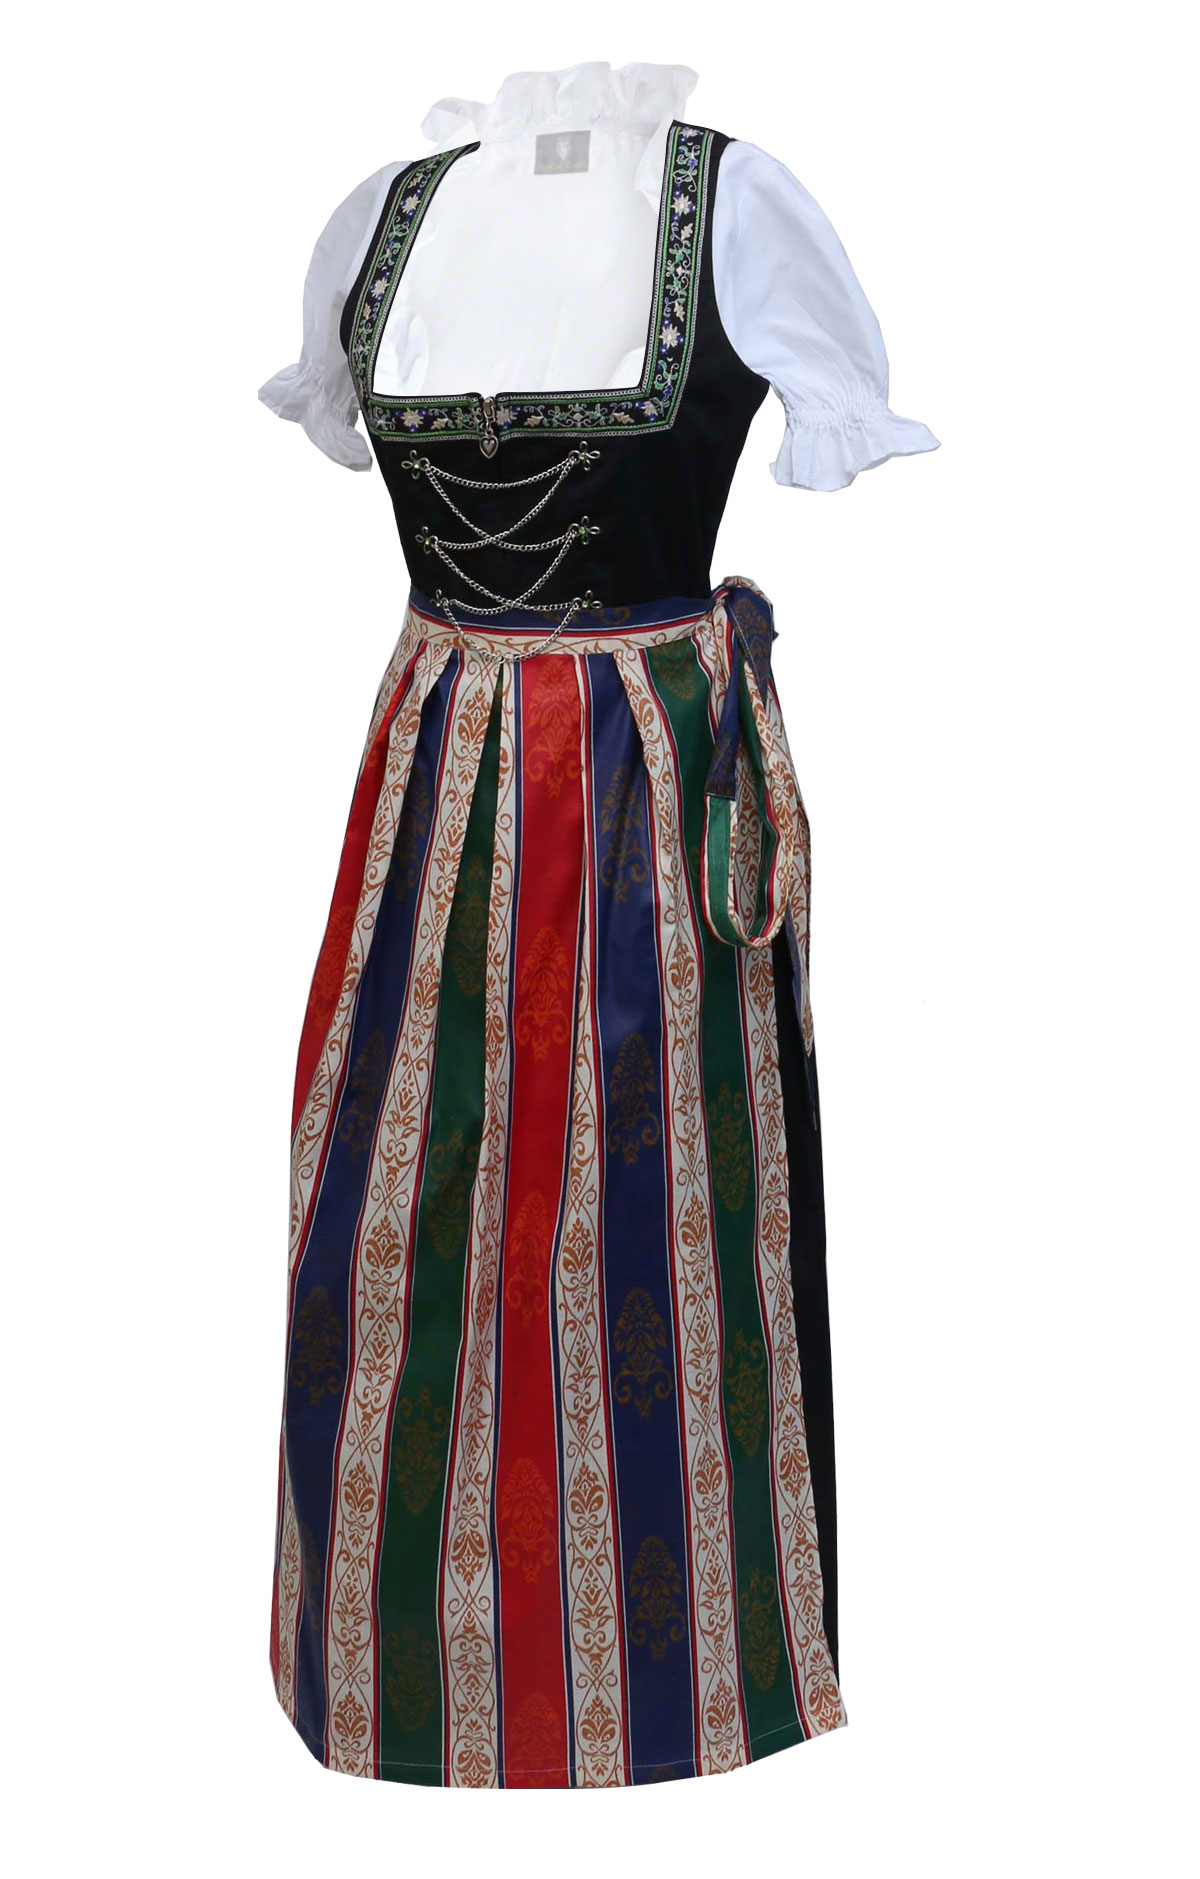 Home   Oktoberfest Sale on Lederhosen and Dirndl   Dirndl Sale f87b952d4d